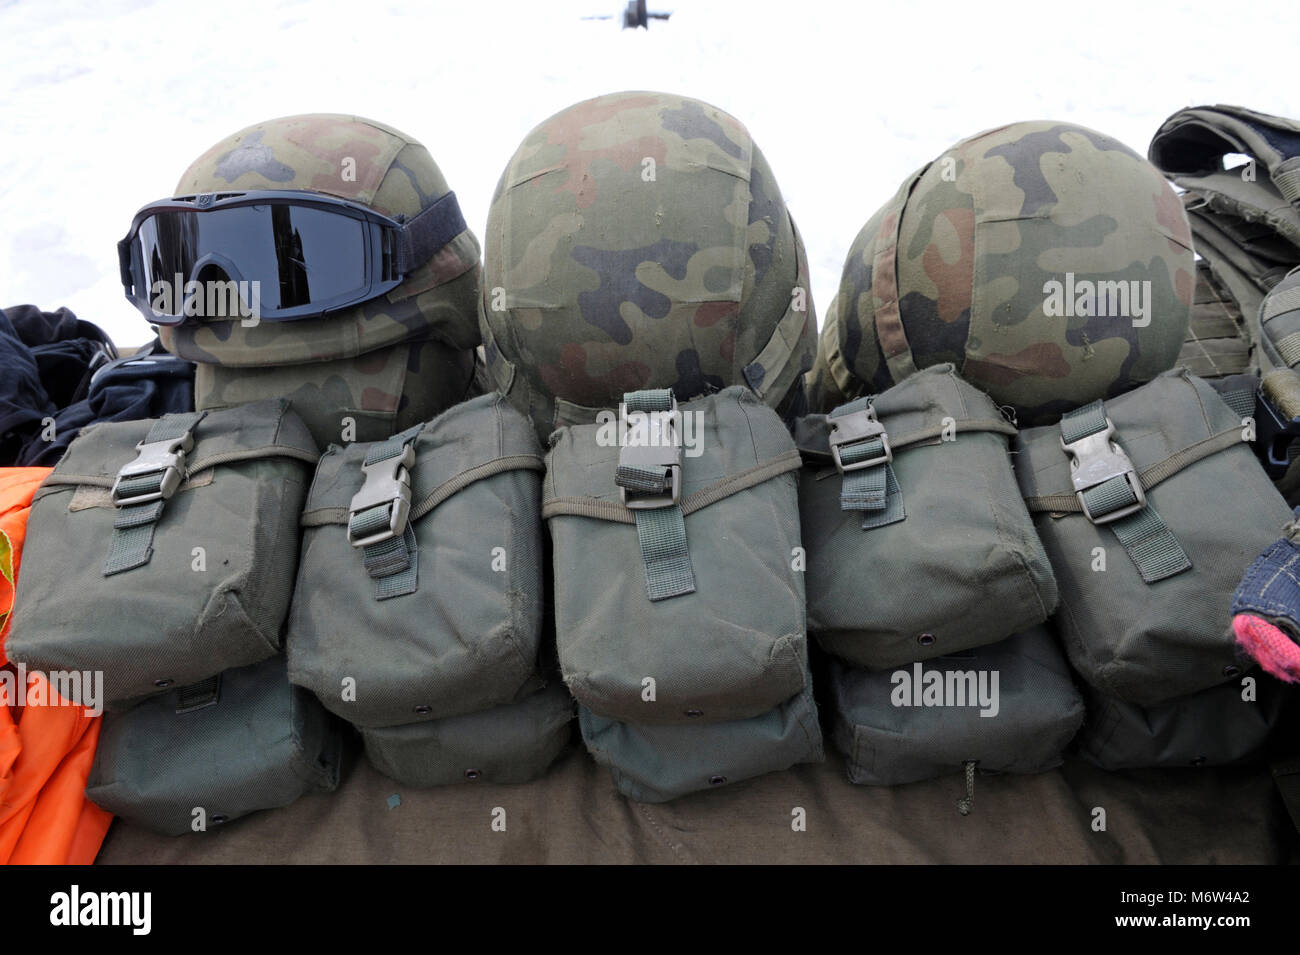 Military Equipment Stock Photos & Military Equipment Stock